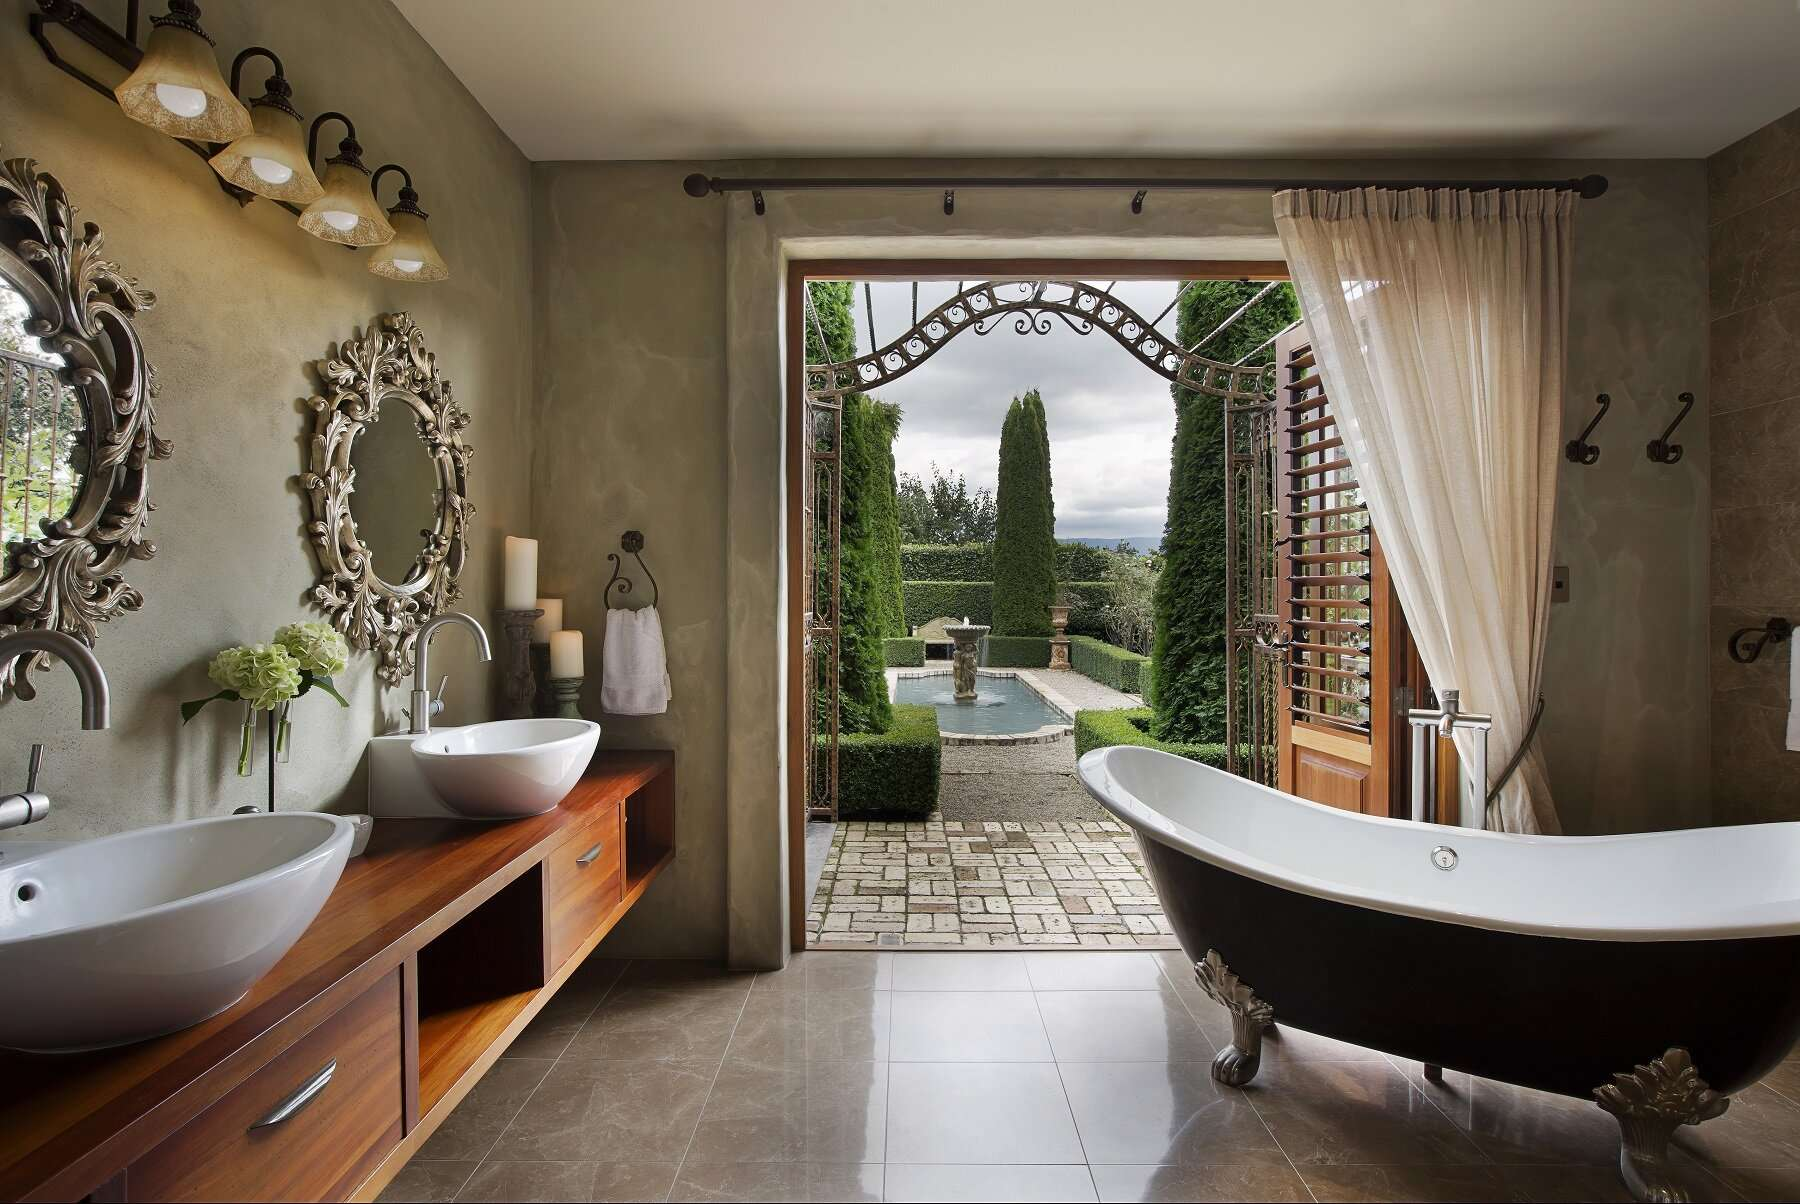 elegant bathroom with black and white freestanding bathtub with a view through open patio doors looking into the pristine garden with water feature